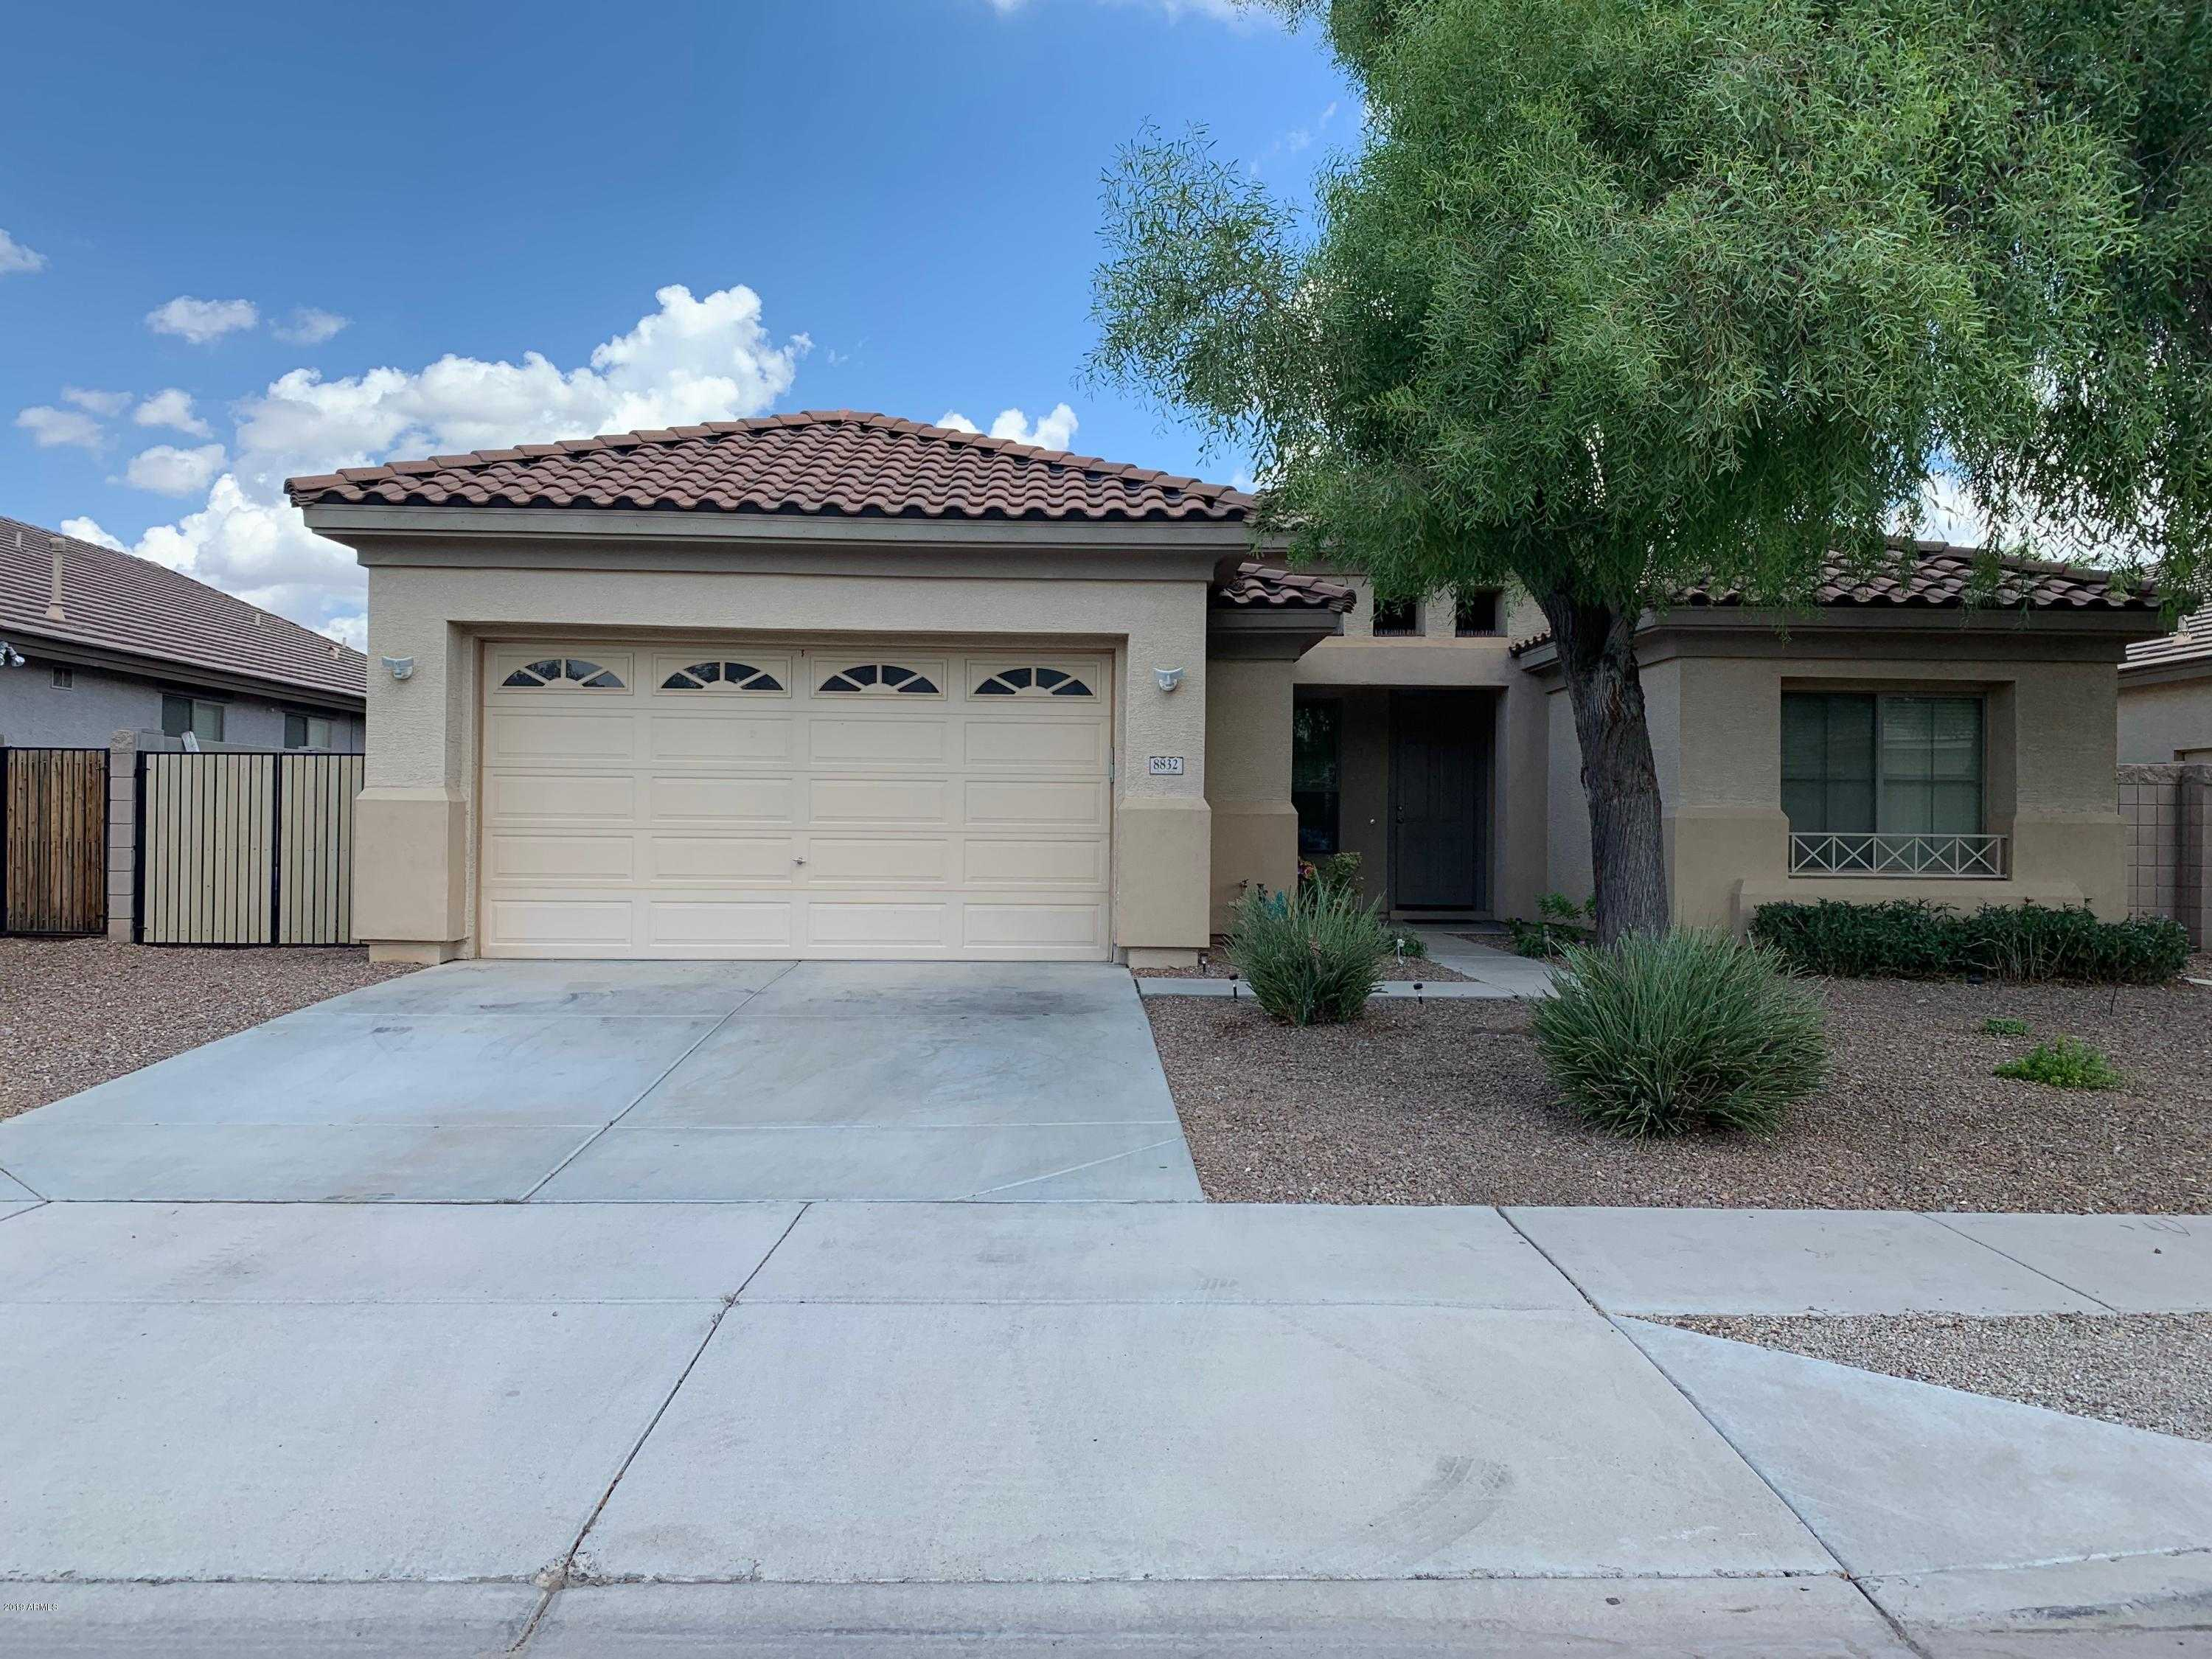 $314,000 - 4Br/3Ba - Home for Sale in Rovey Farm Estates South, Glendale